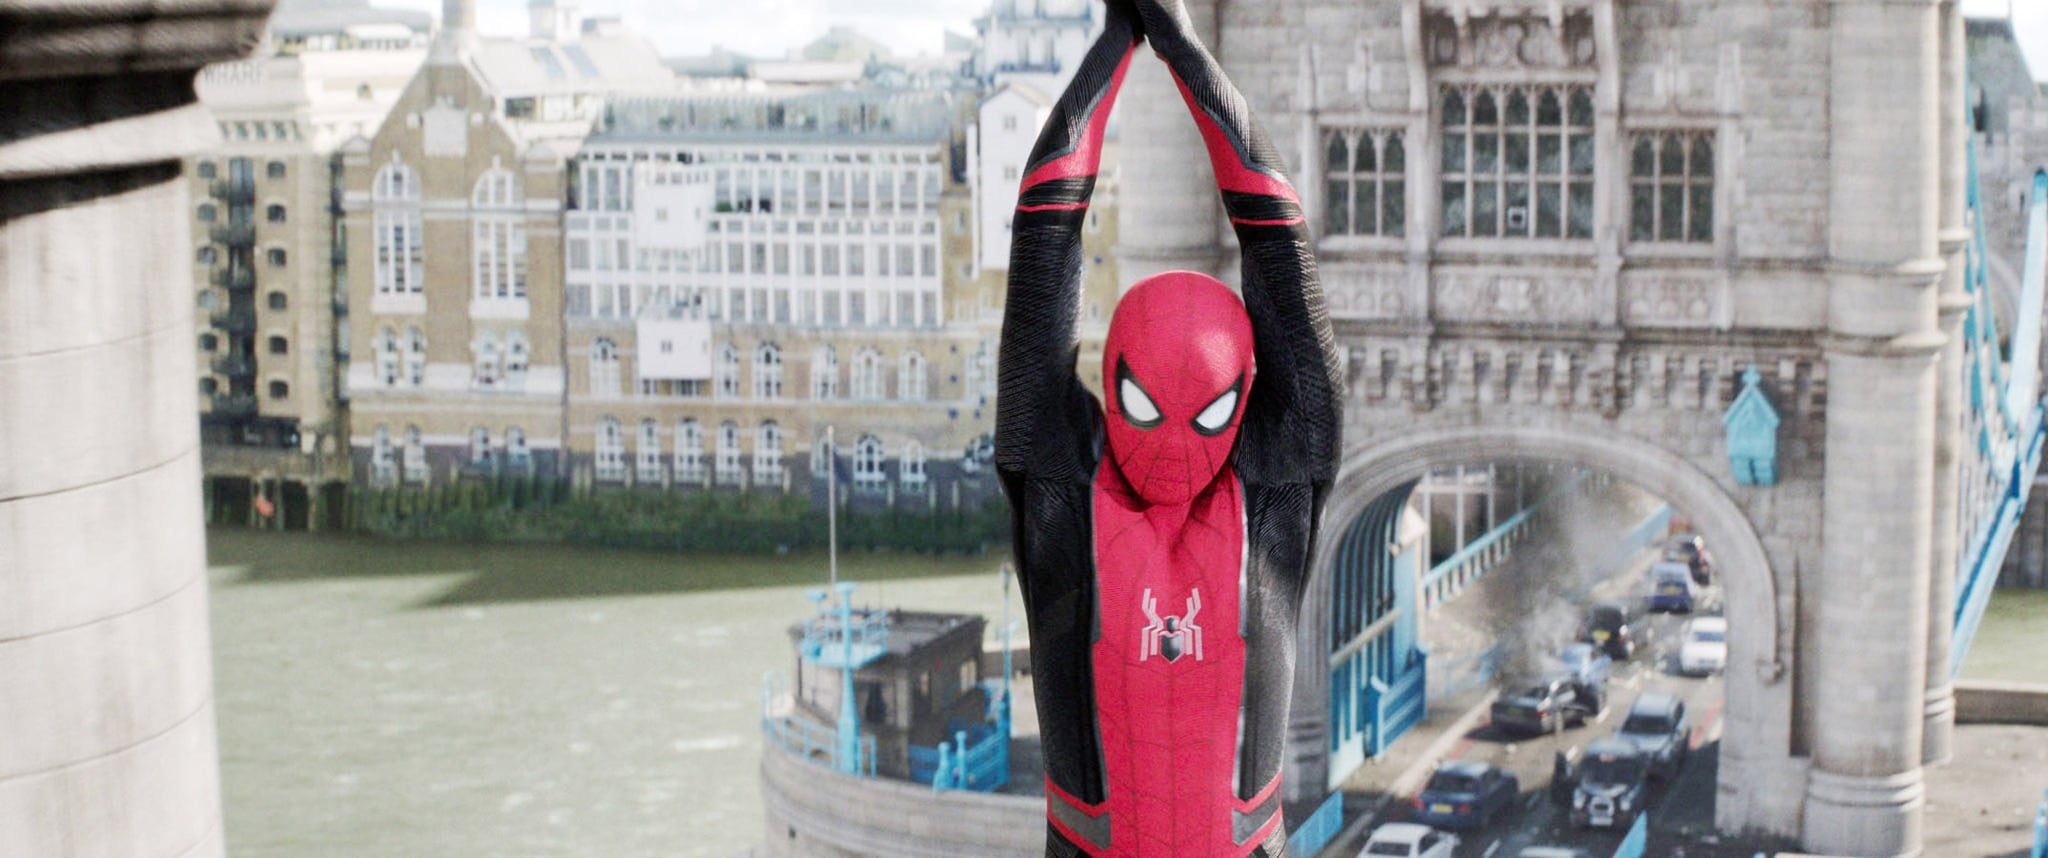 SPIDER-MAN: FAR FROM HOME, Tom Holland as Spider-Man / Peter Parker, 2019.  Columbia /  Marvel Studios/ Courtesy Everett Collection